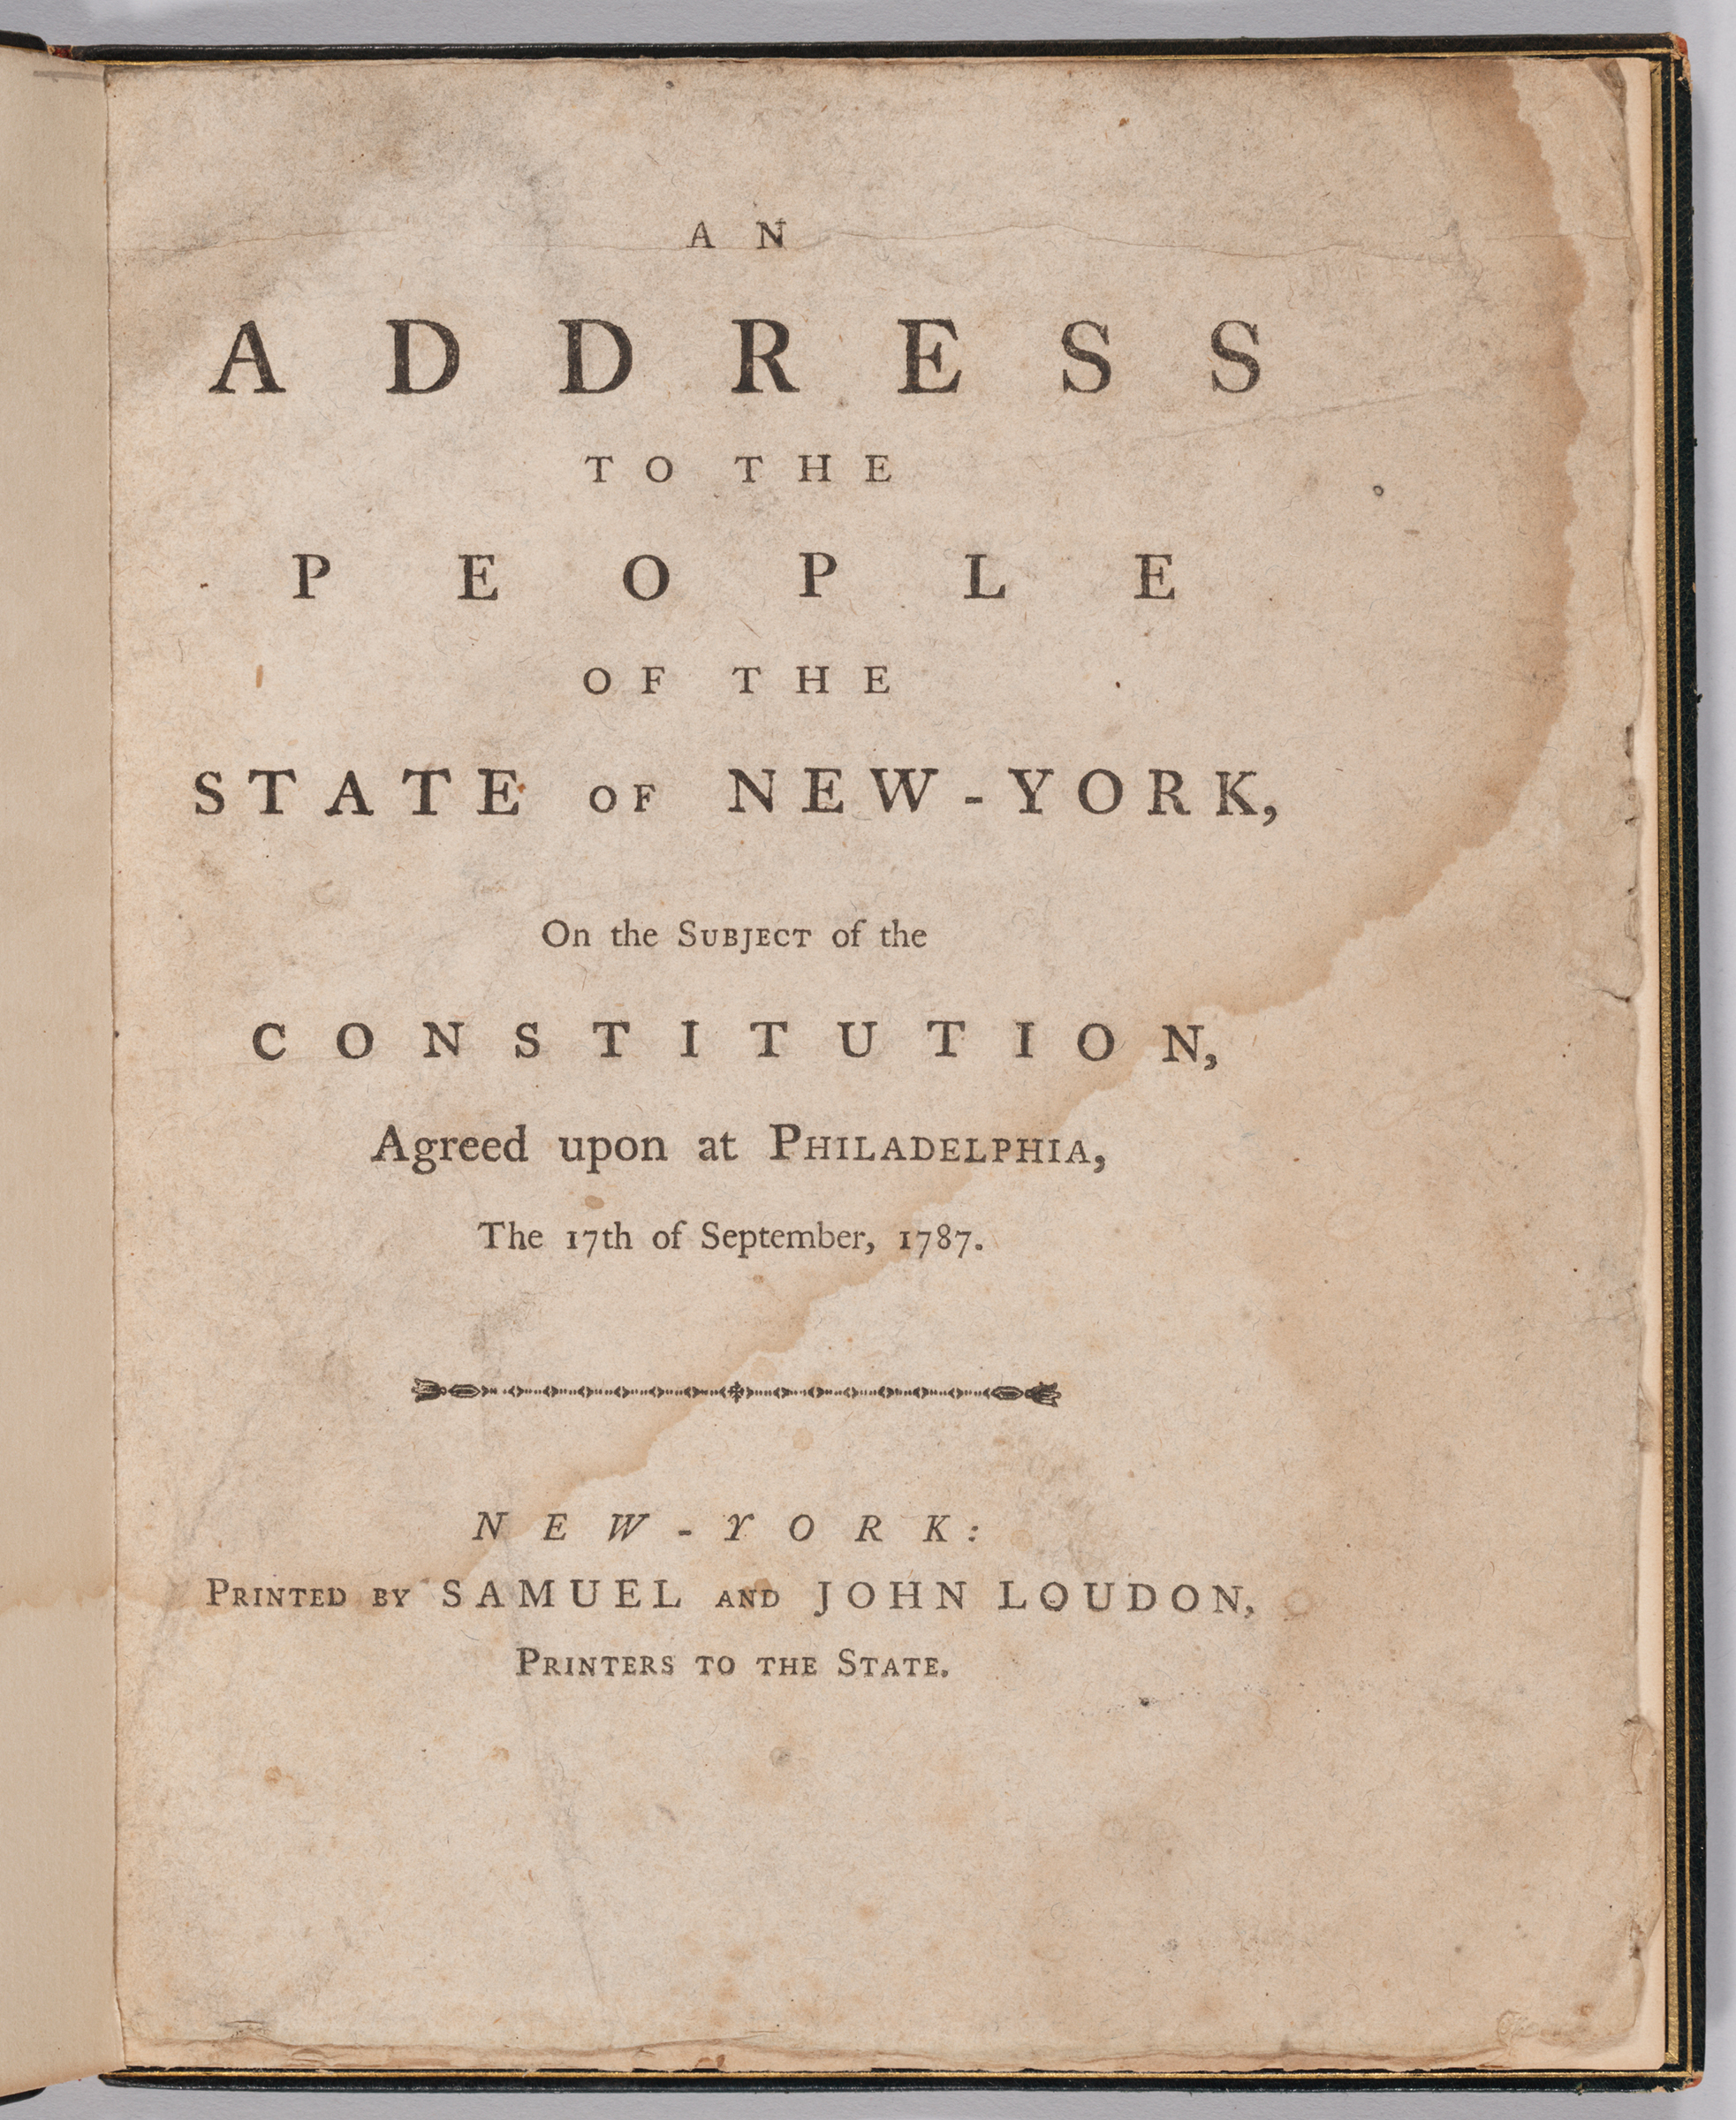 Address to the People of the State of New York on the Subject of the Constiitution, title page